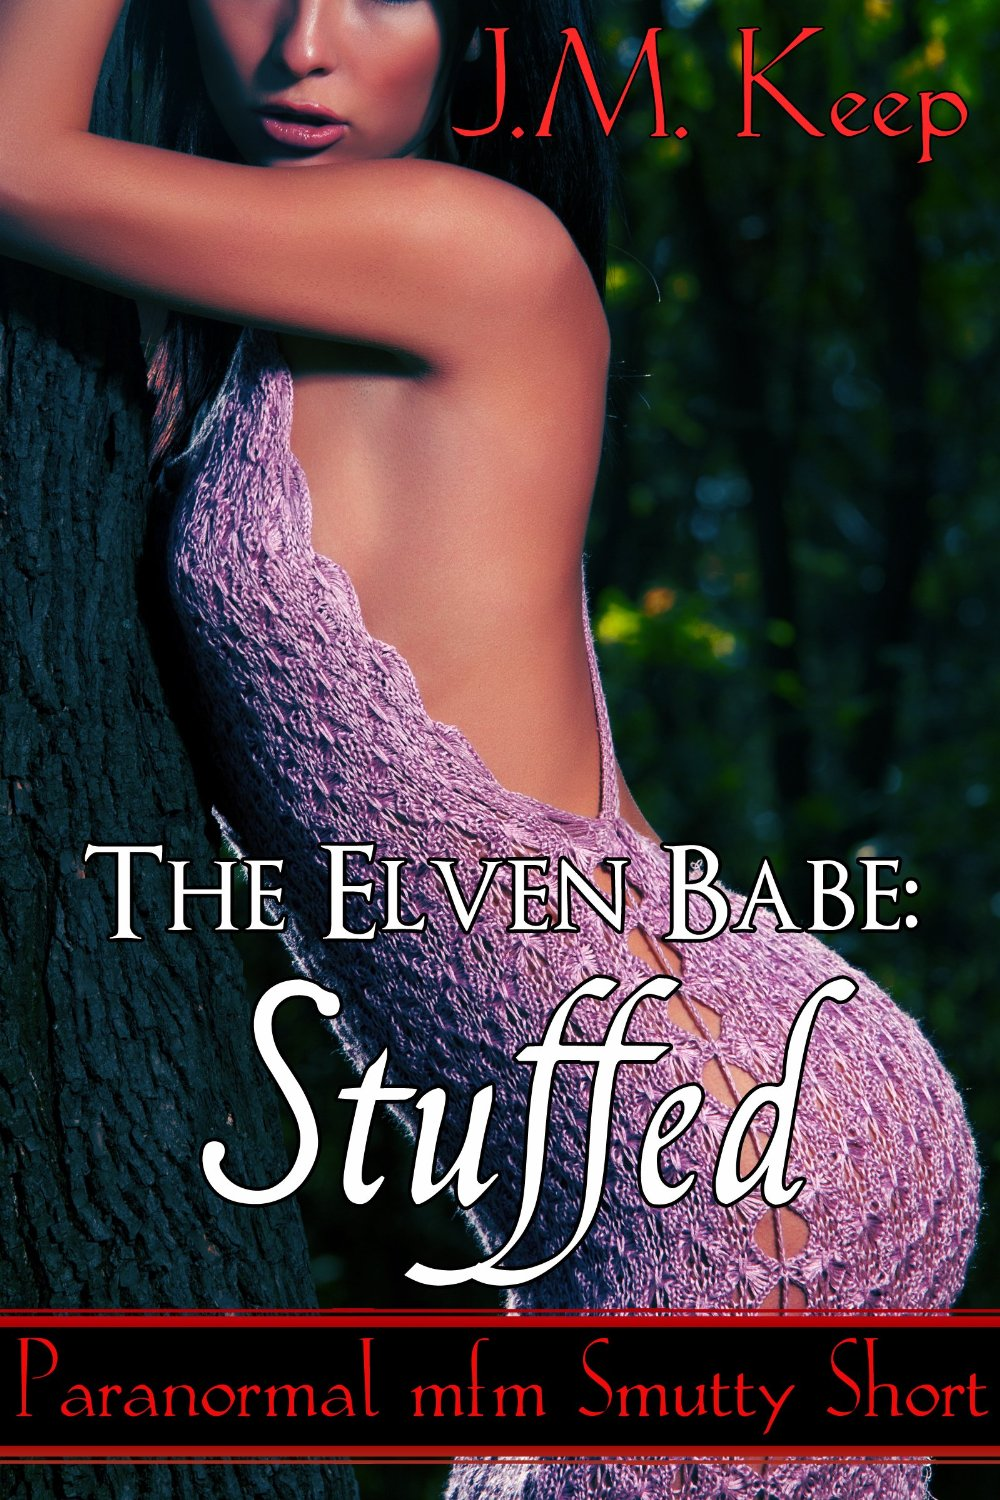 The Elven Babe: Stuffed: Paranormal Smutty Short (The Elven Babe by J.M. Keep Book 1)